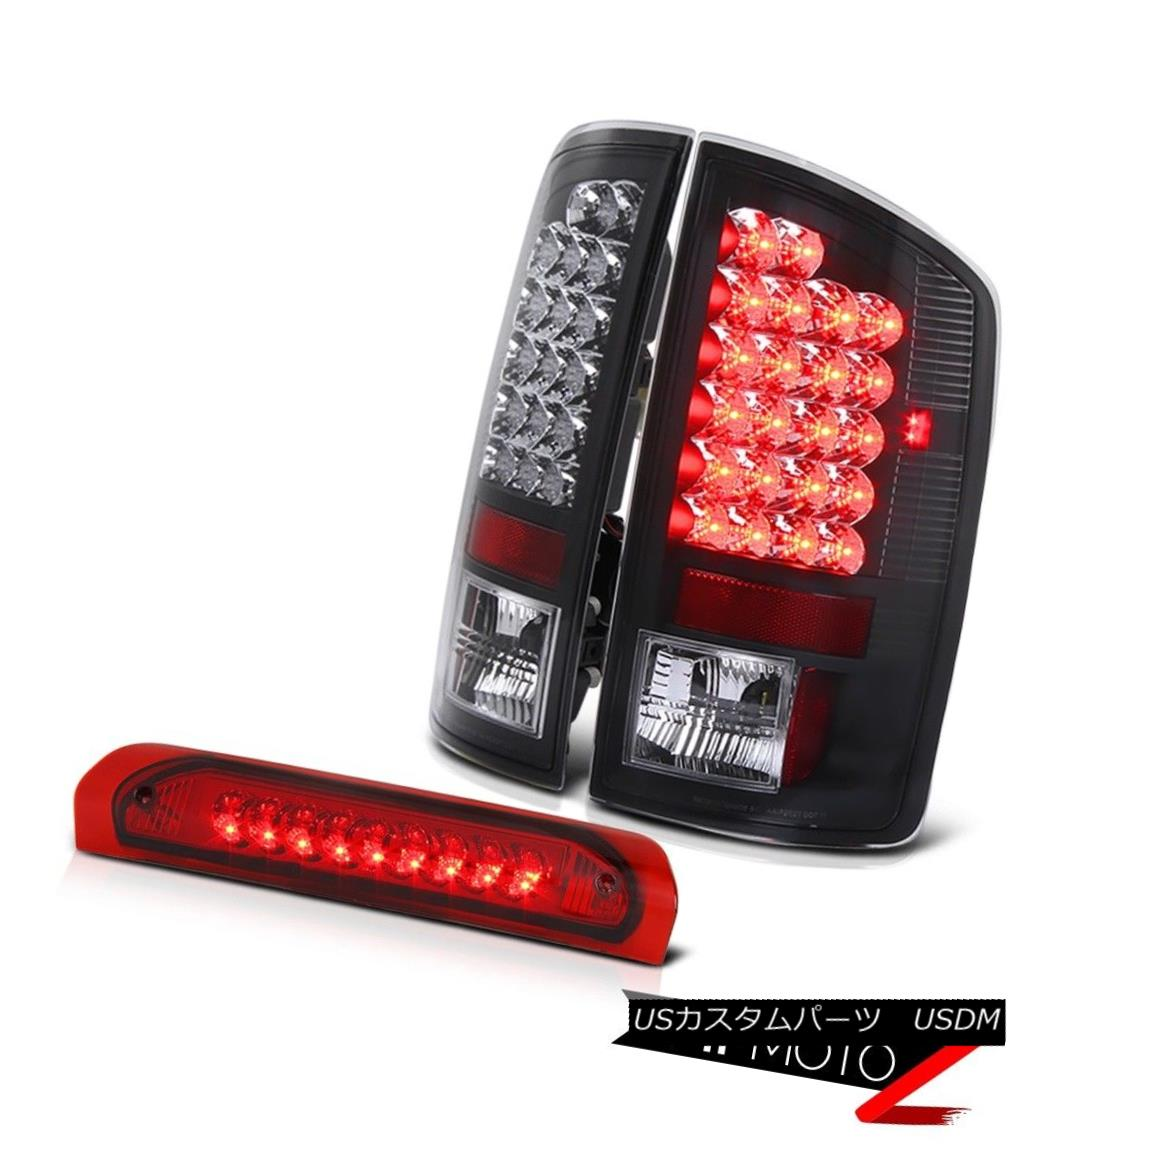 テールライト 02-05 Dodge Ram 1500/2500/3500 Truck Black Led Tail Light+RED LED 3rd Brake Lamp 02-05 Dodge Ram 1500/2500/3500トラックブラックLedテールライト+ RED LED第3ブレーキランプ